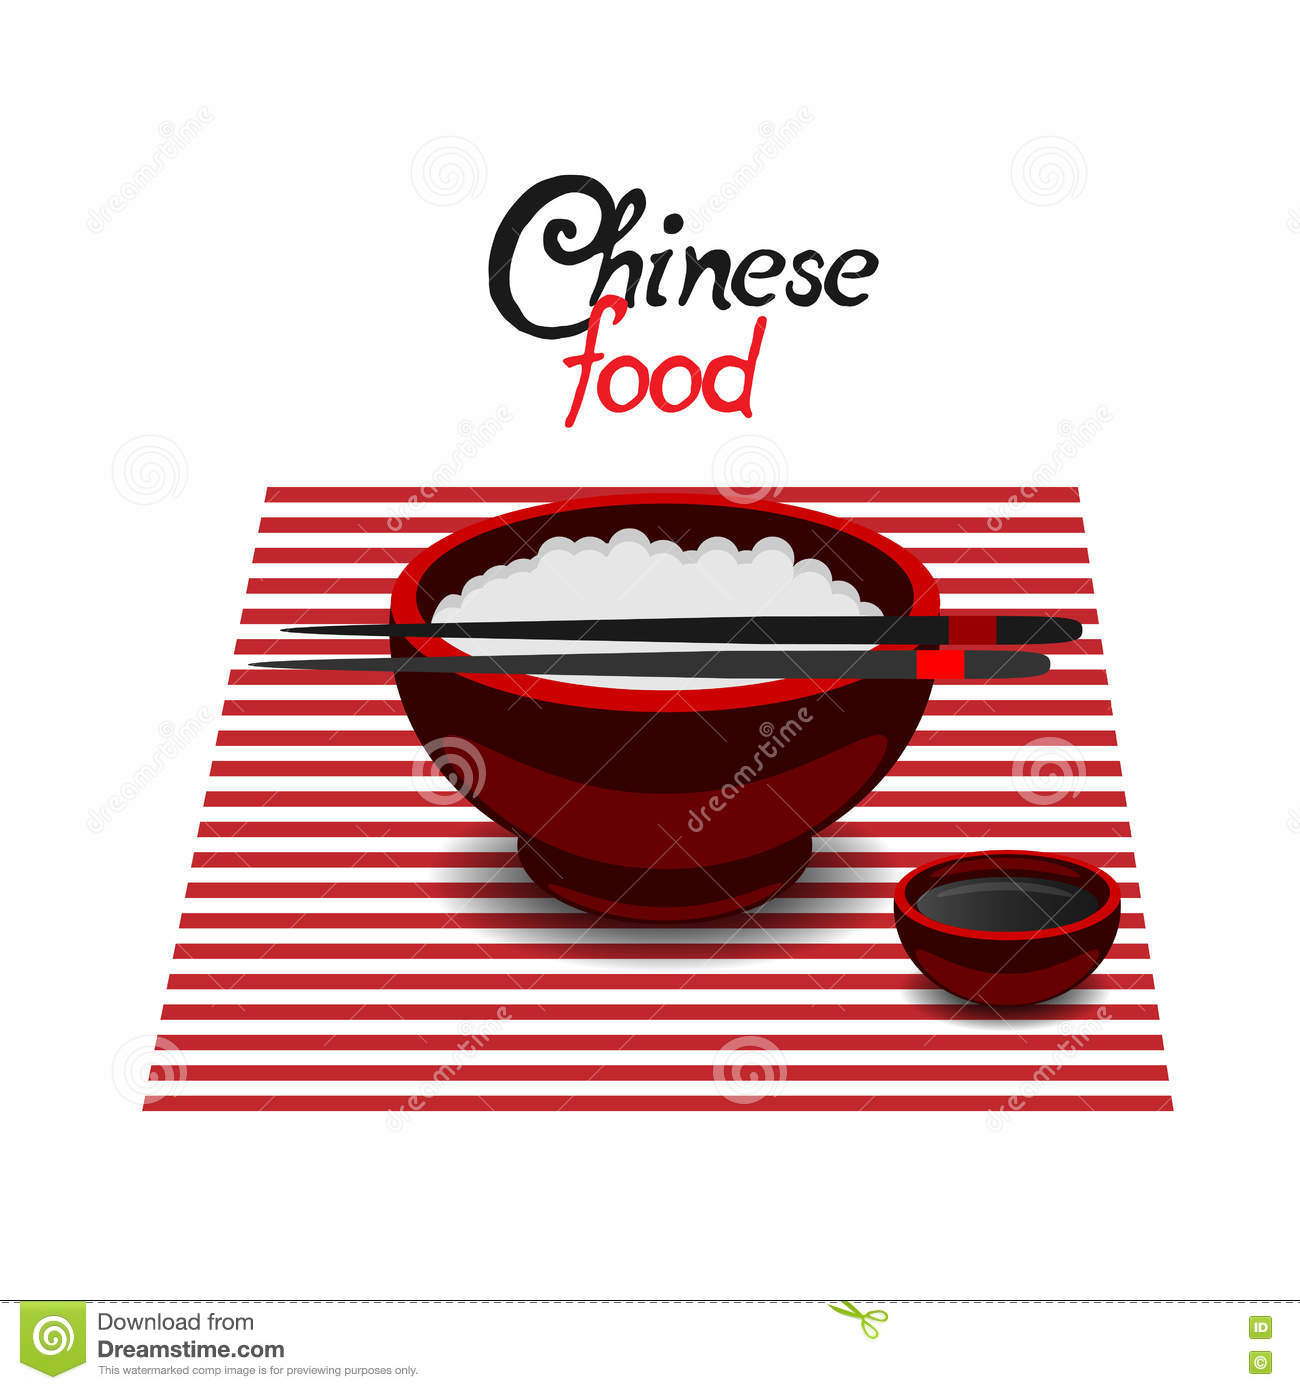 soy sauce clipart black and white